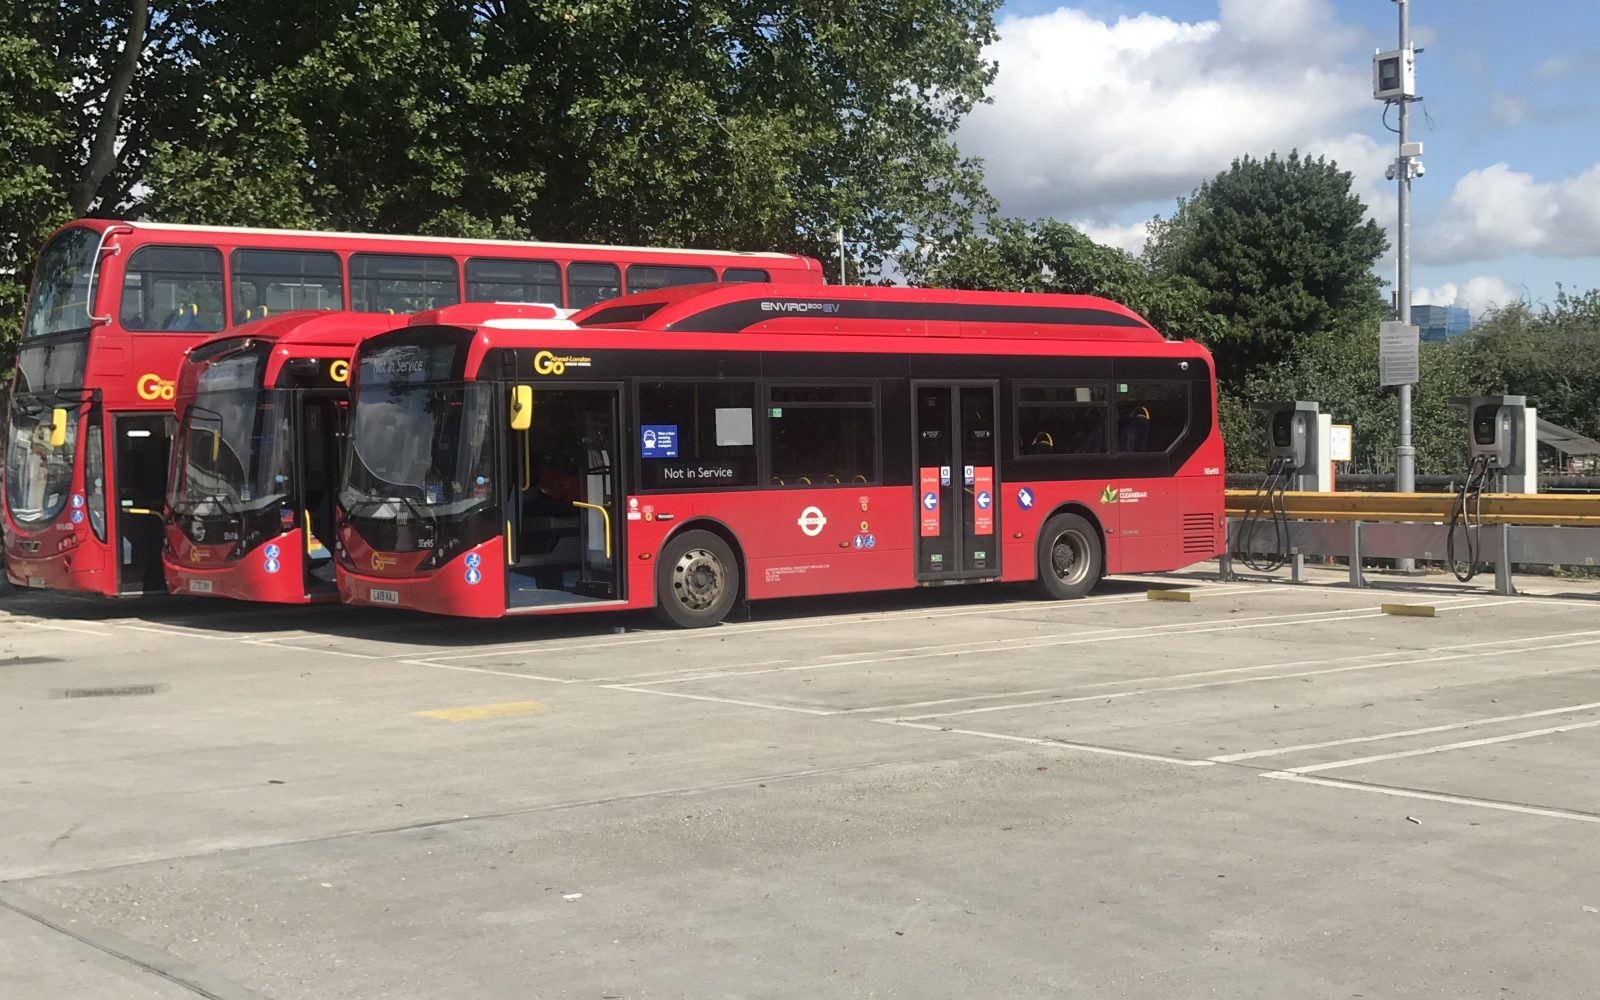 Buses at Northumberland Park garage. Image: SSE Enterprises.